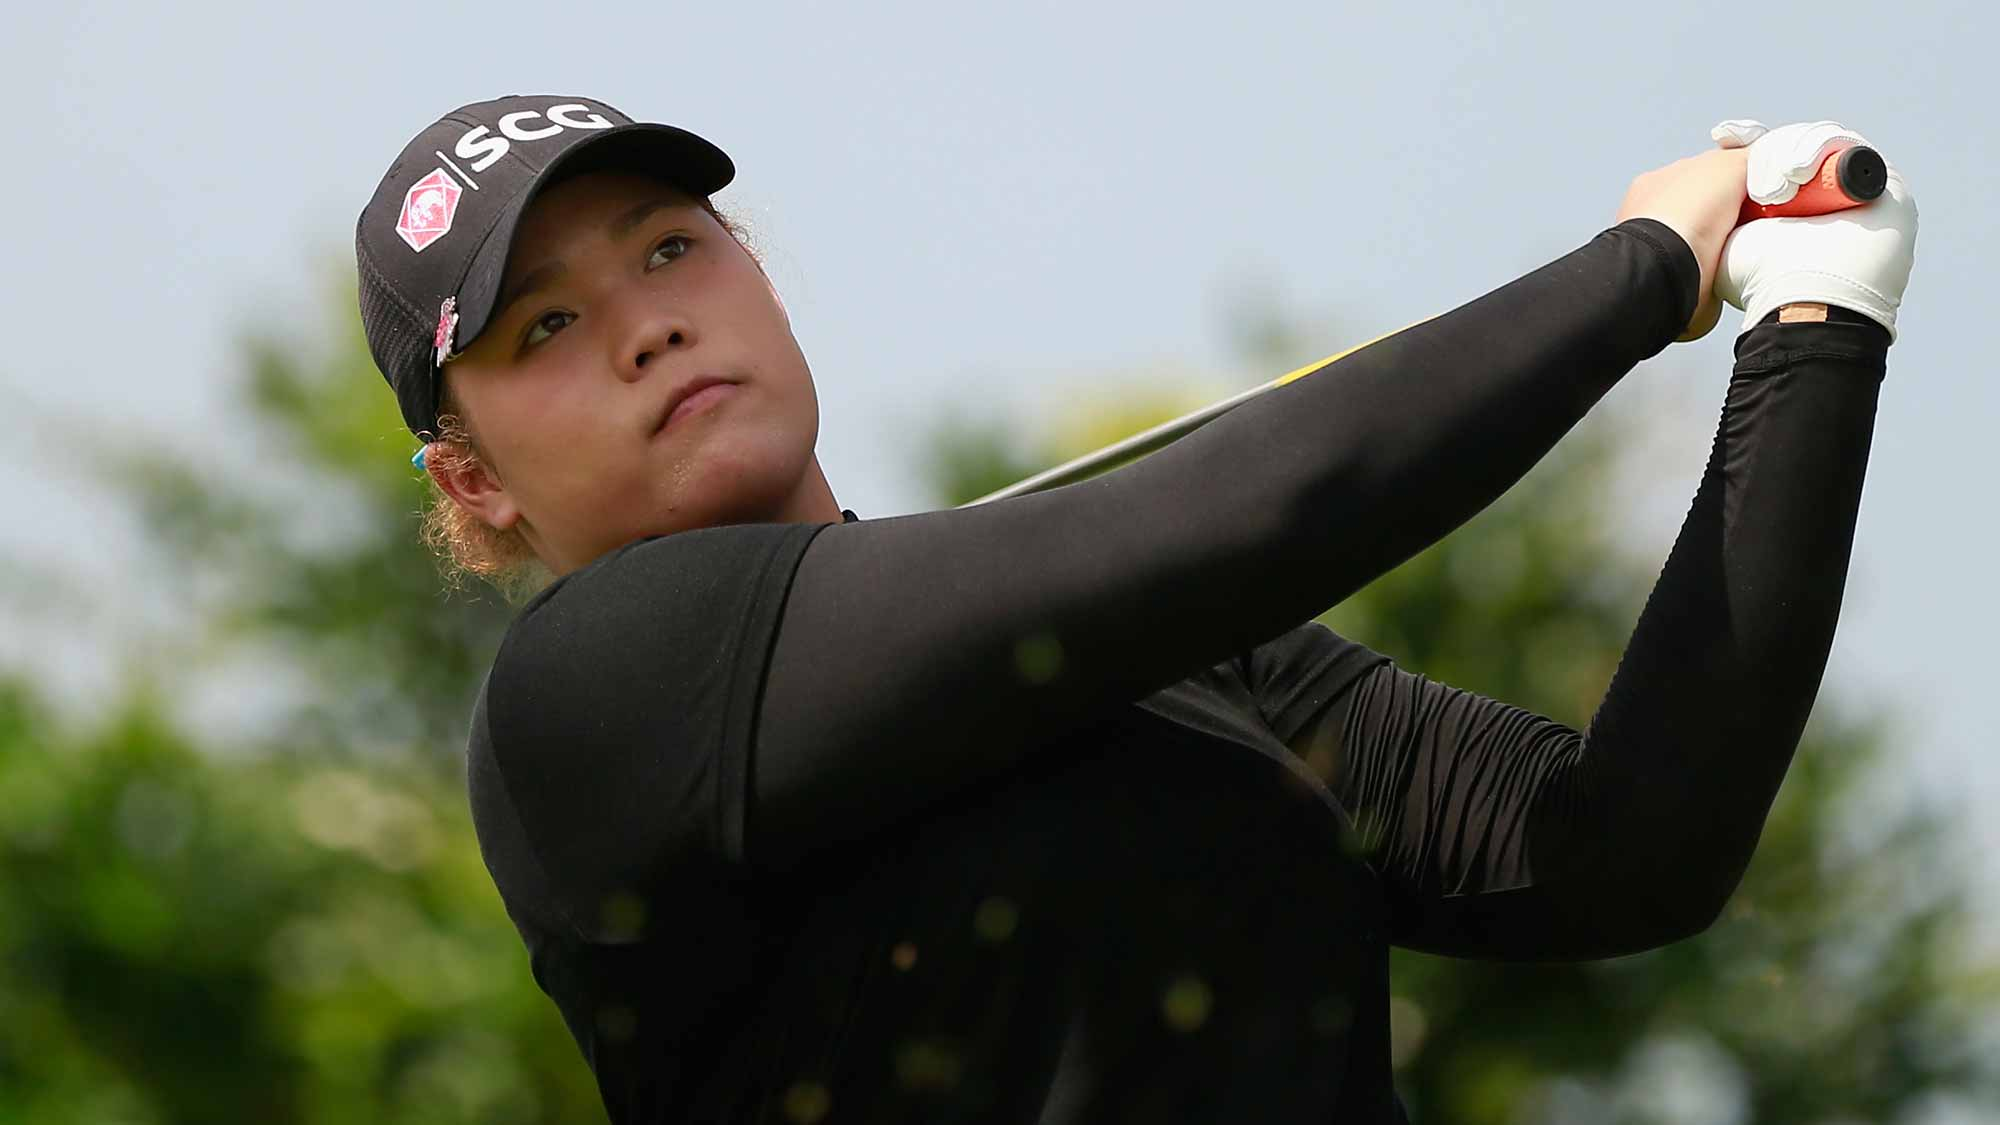 Ariya Jutanugarn of Thailand tee off at Blue Bay LPGA during Round 1